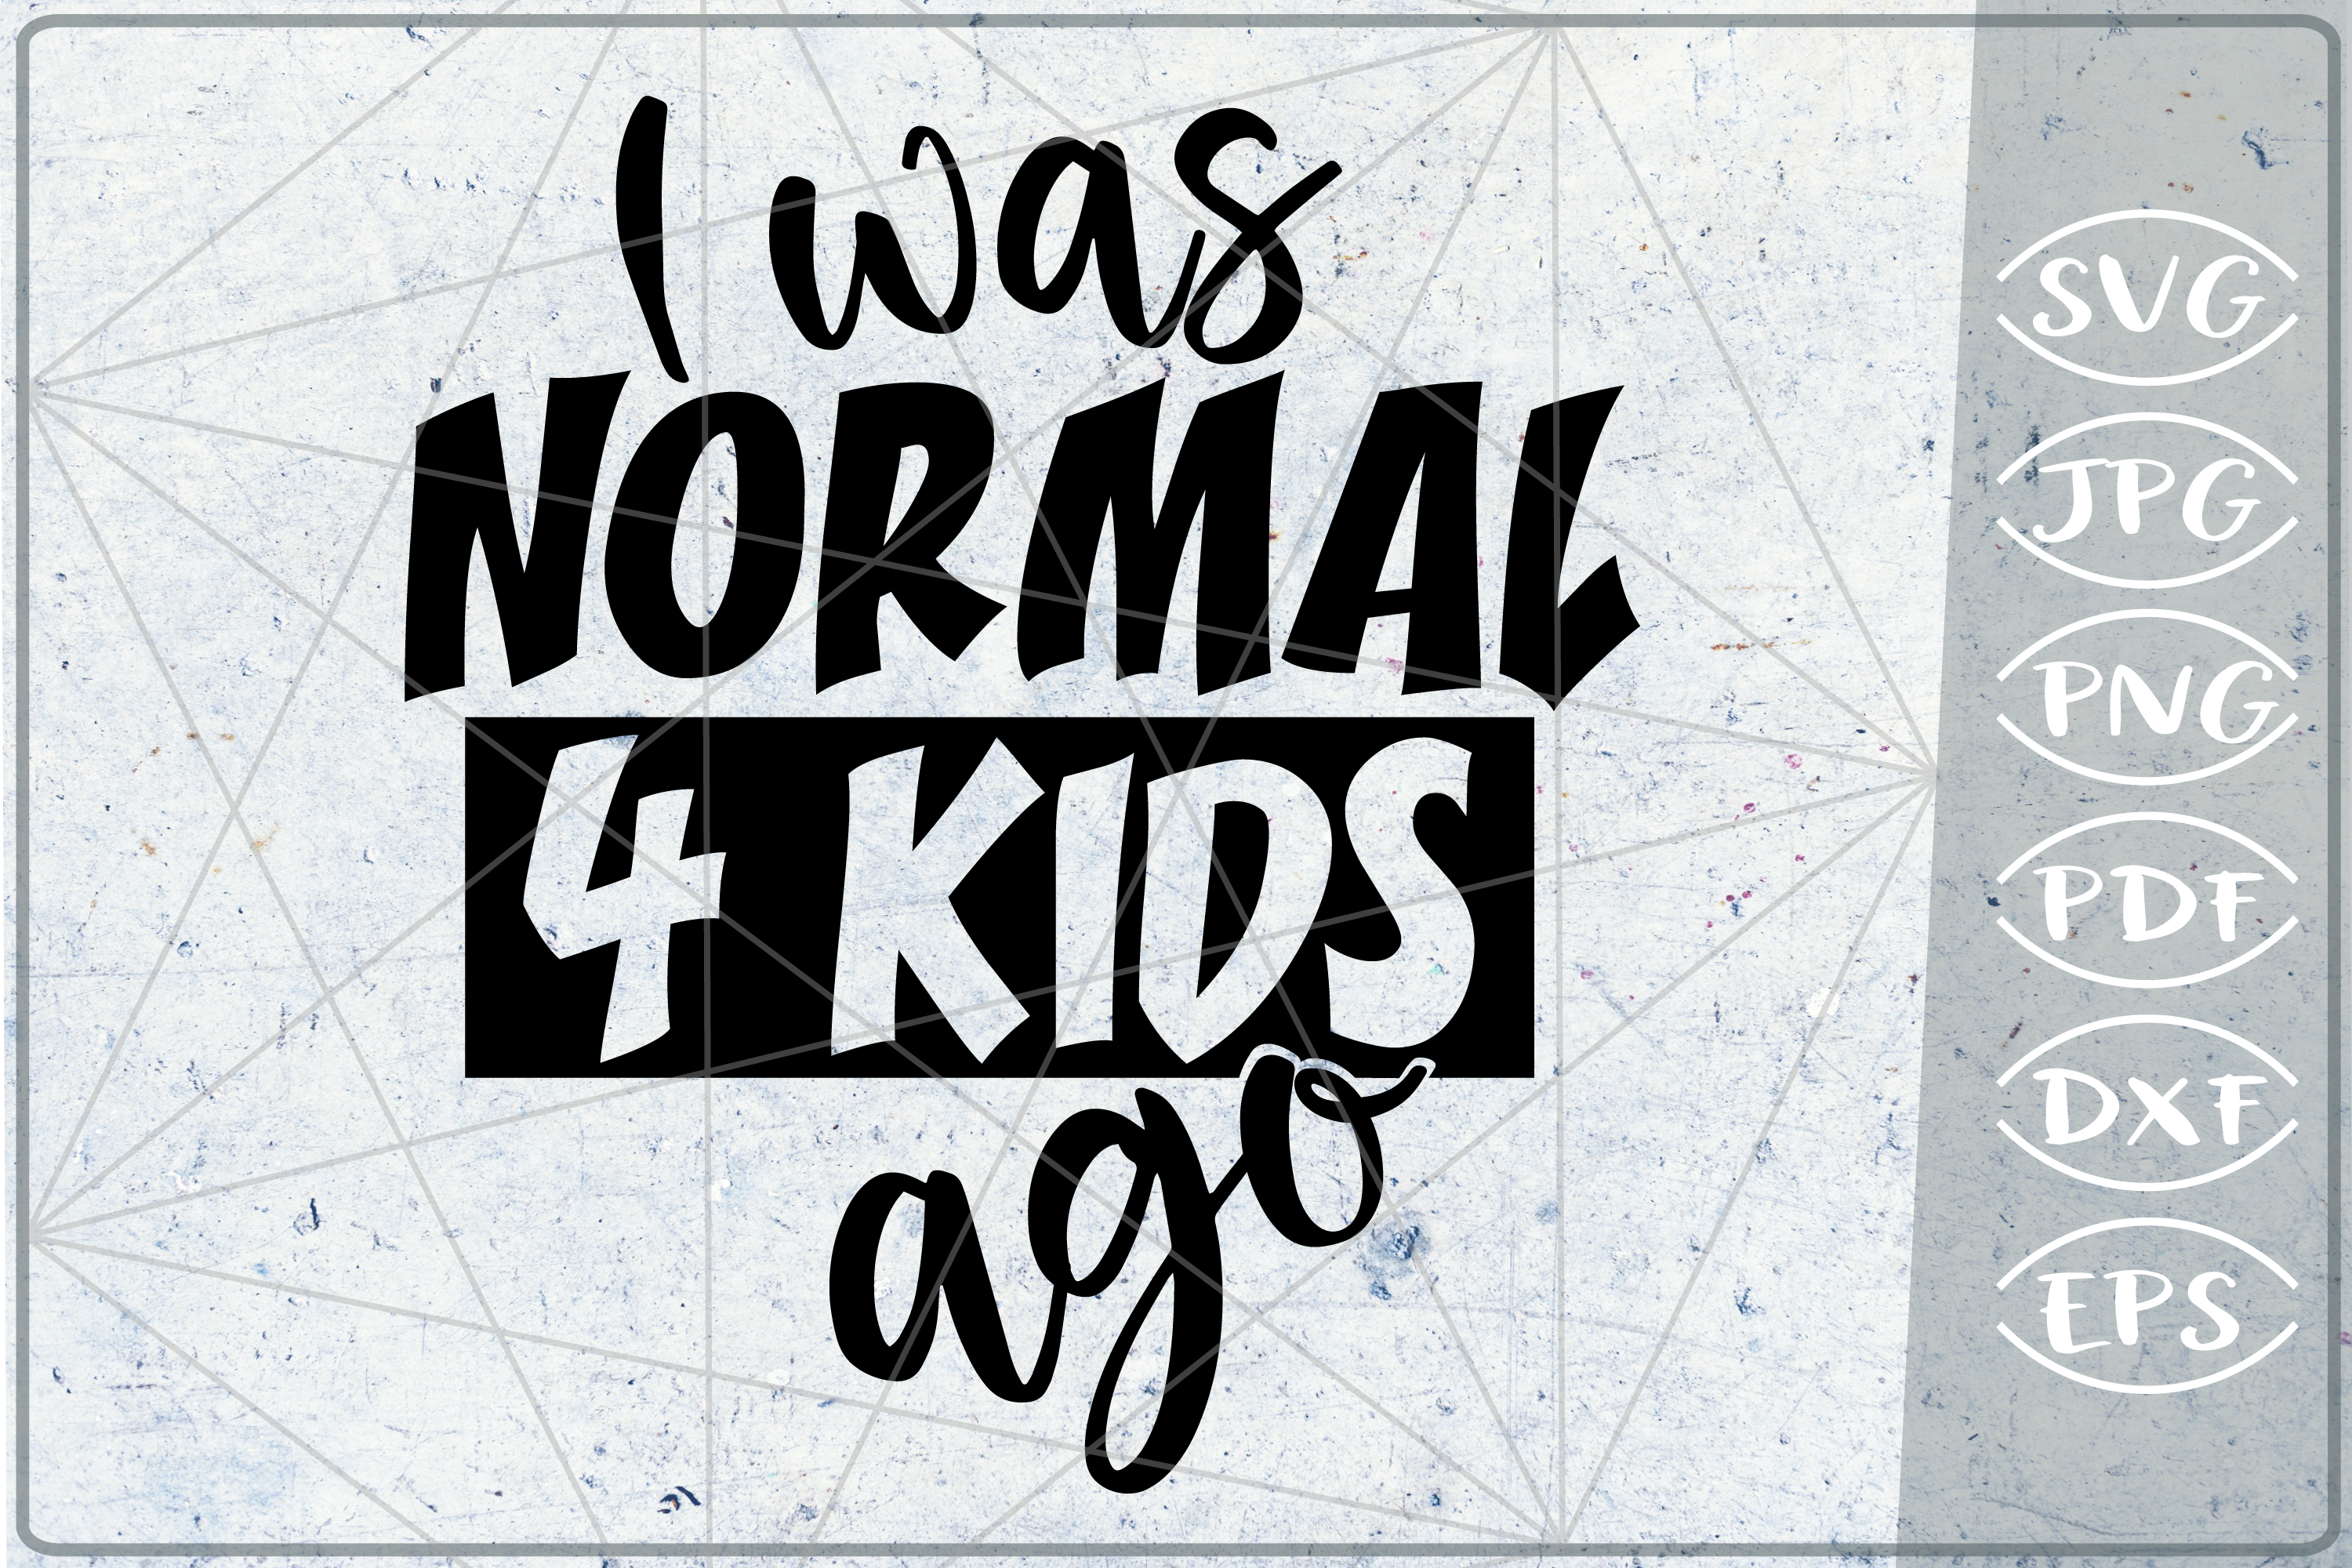 I Was Normal 4 Kids Ago SVG Cutting File - Mom Life example image 1